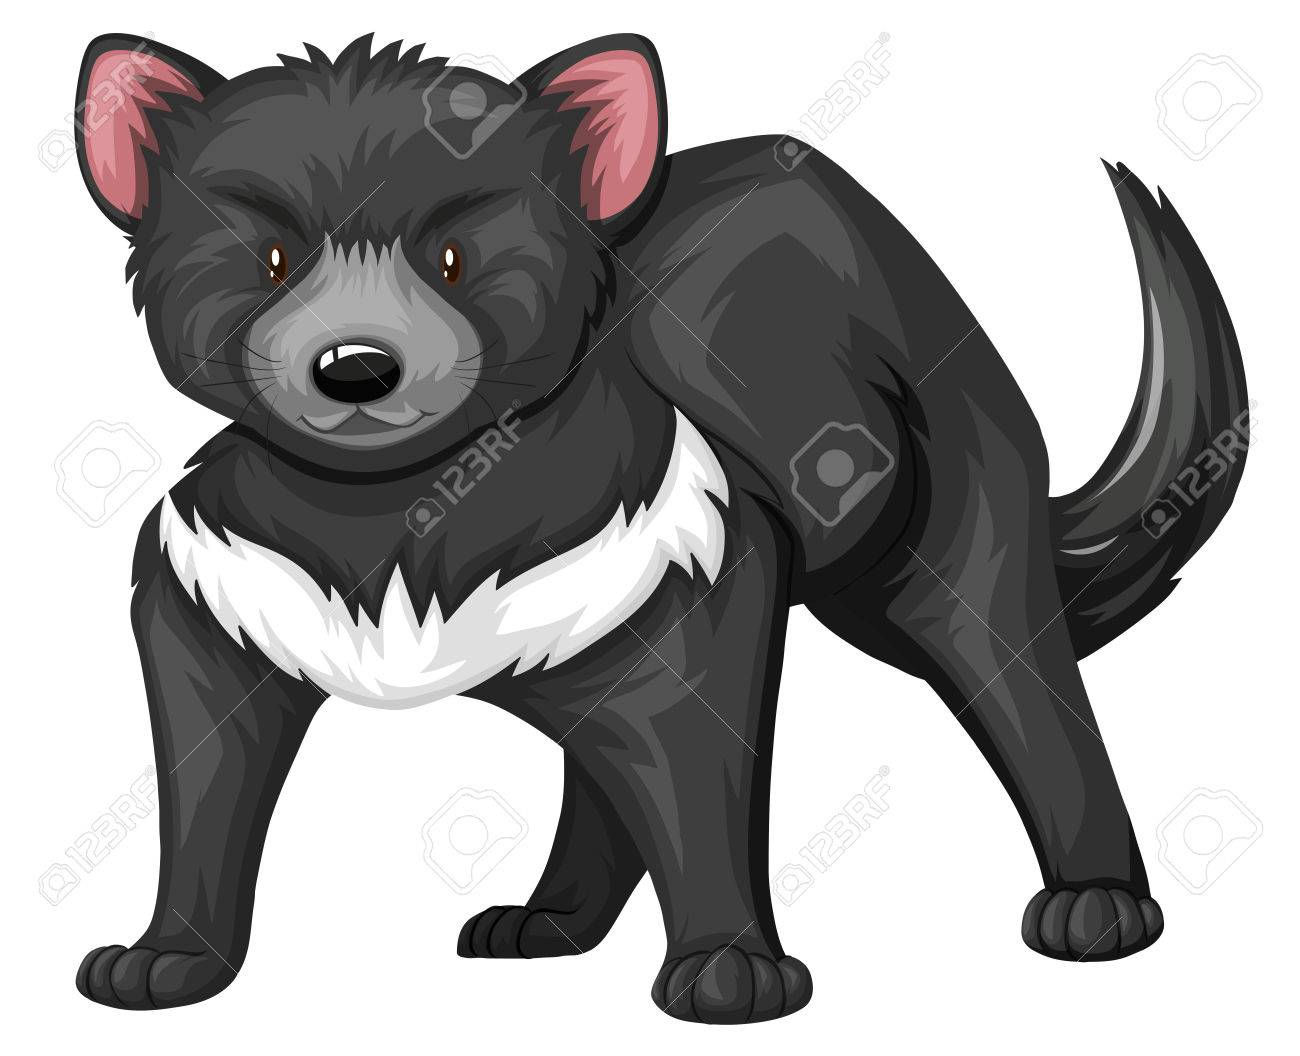 tasmanian devil with black fur illustration royalty free cliparts rh 123rf com Tasmanian Devil Graphics tasmanian devil clipart free